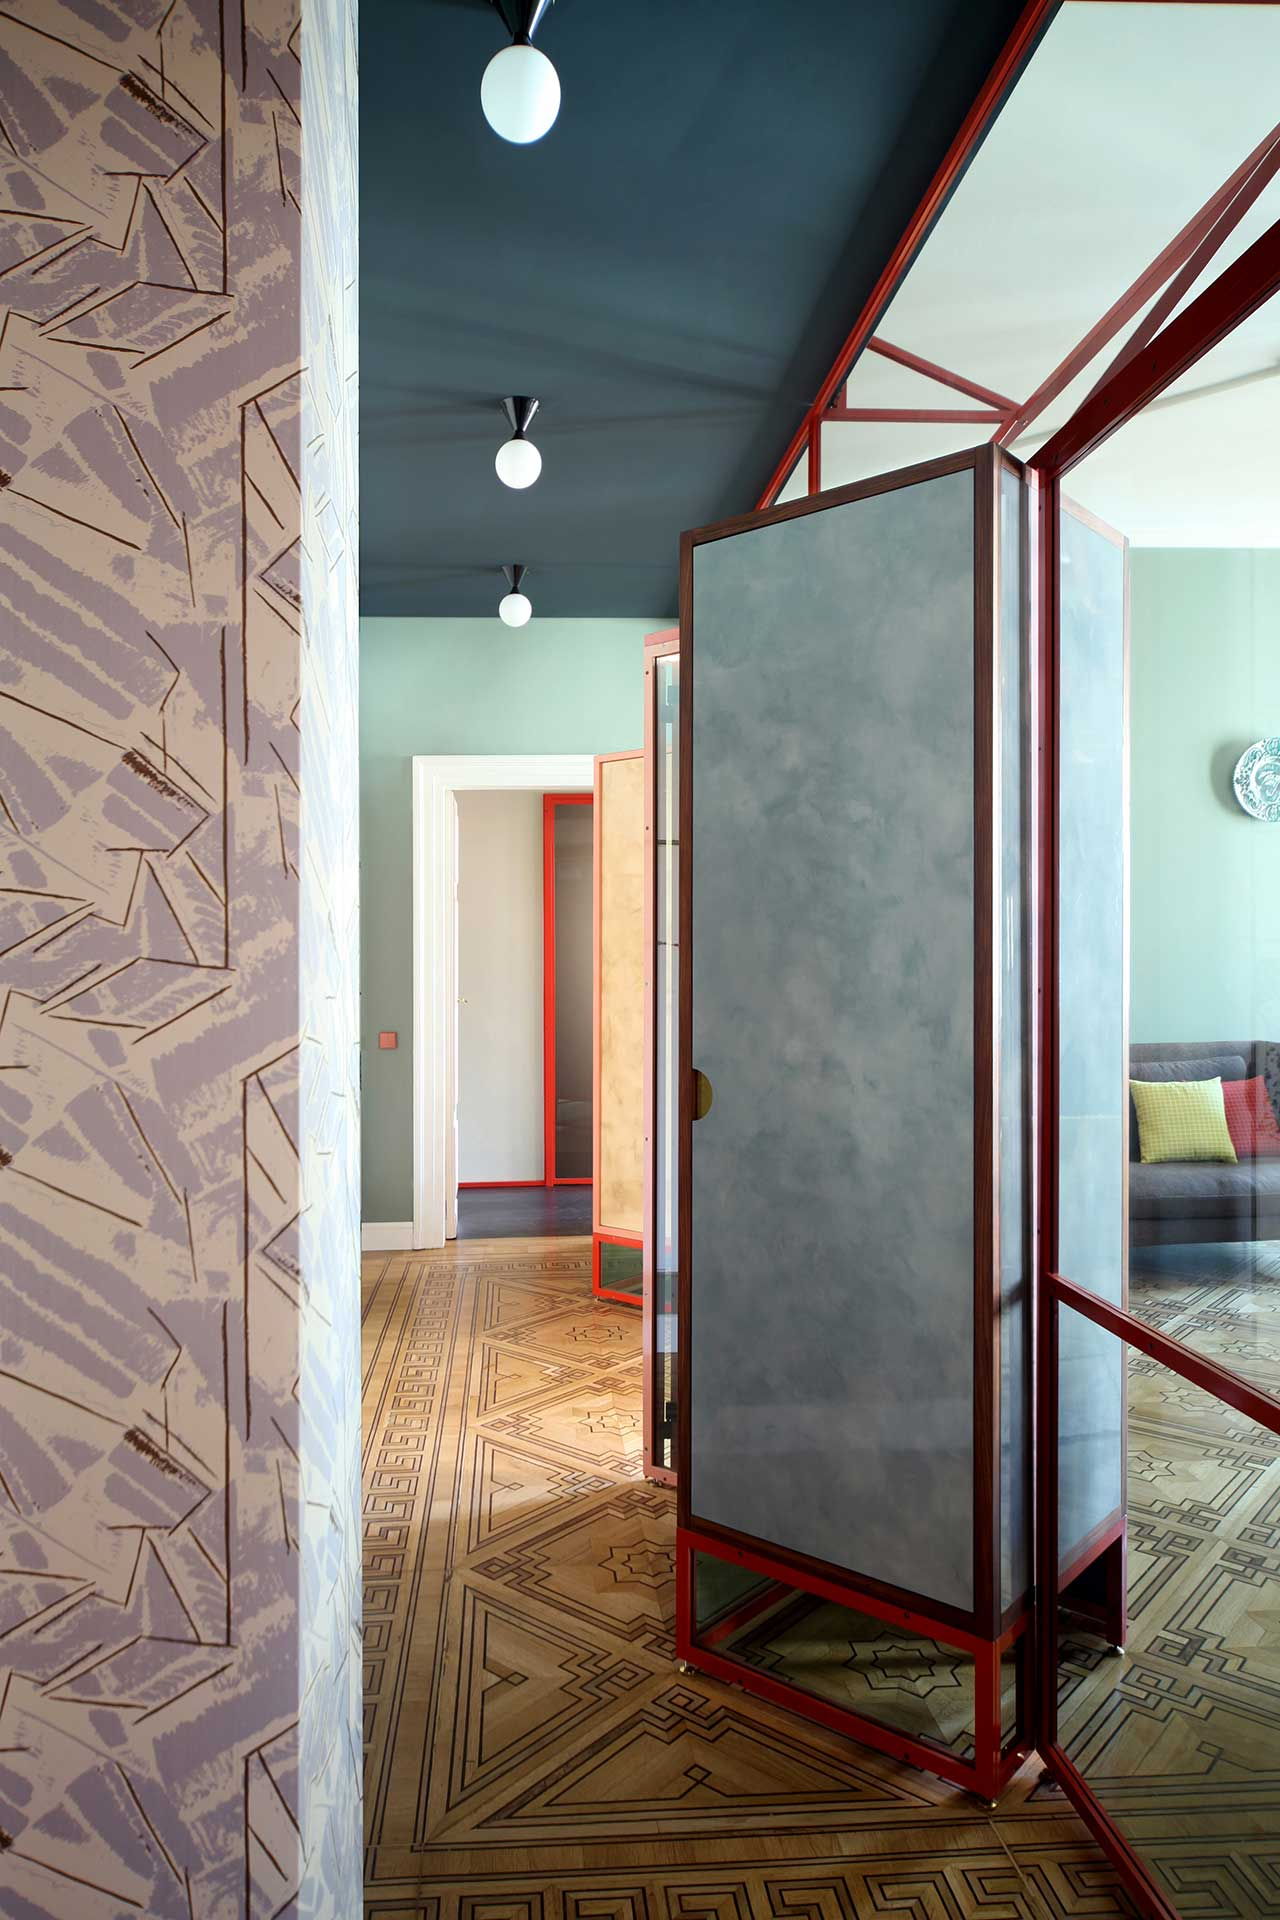 f6_marcante_testa_another_venice_-internal_renovation_of_historic_building_in_venice_italy_yatzer